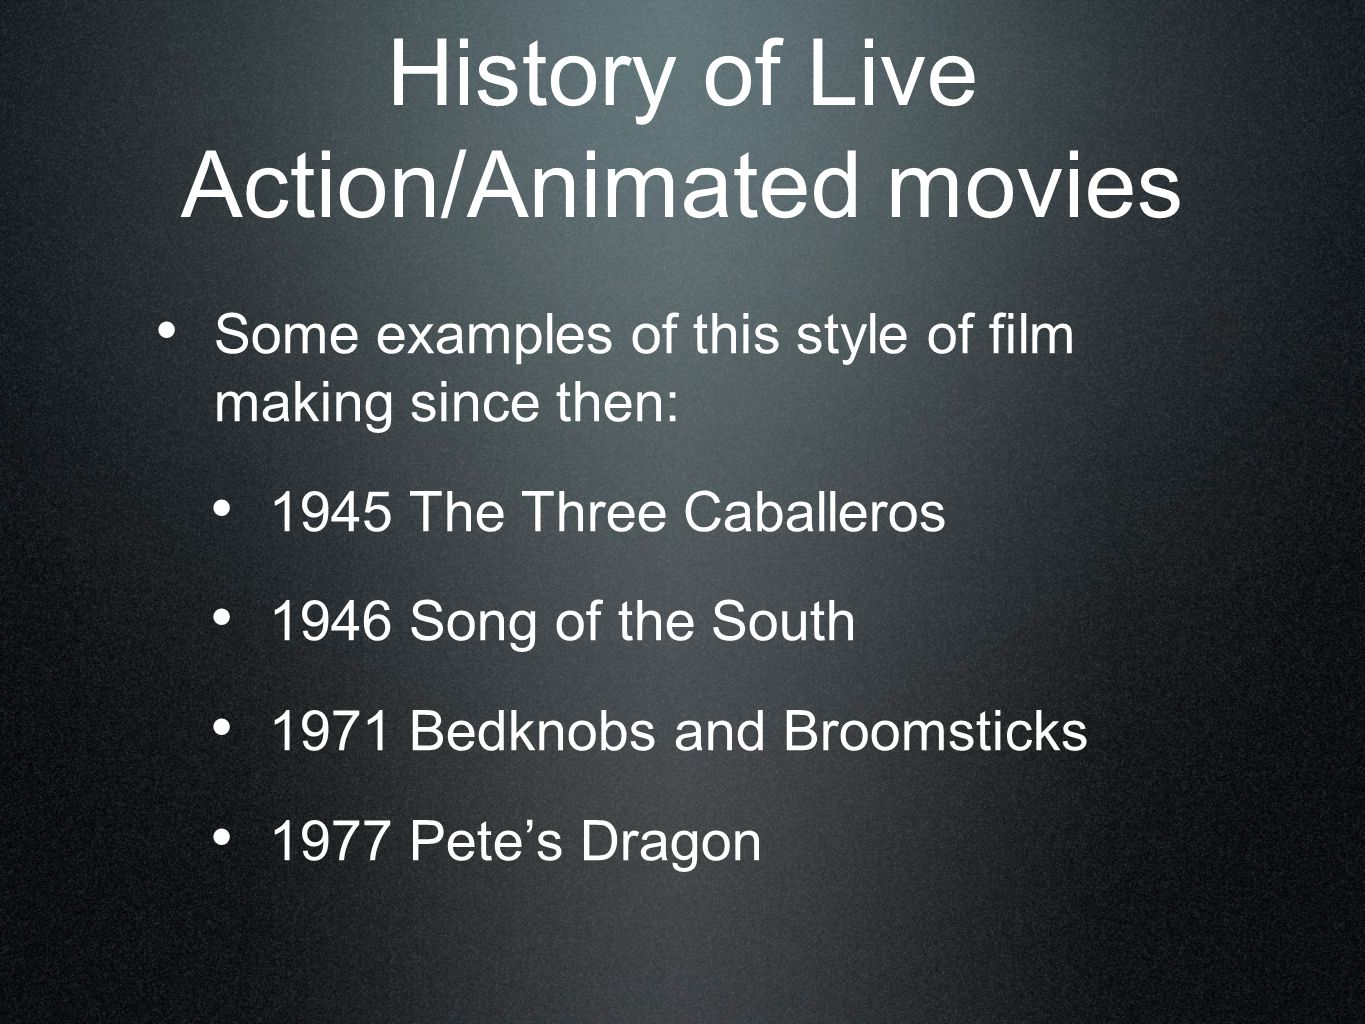 Some examples of this style of film making since then: 1945 The Three Caballeros 1946 Song of the South 1971 Bedknobs and Broomsticks 1977 Pete's Dragon History of Live Action/Animated movies